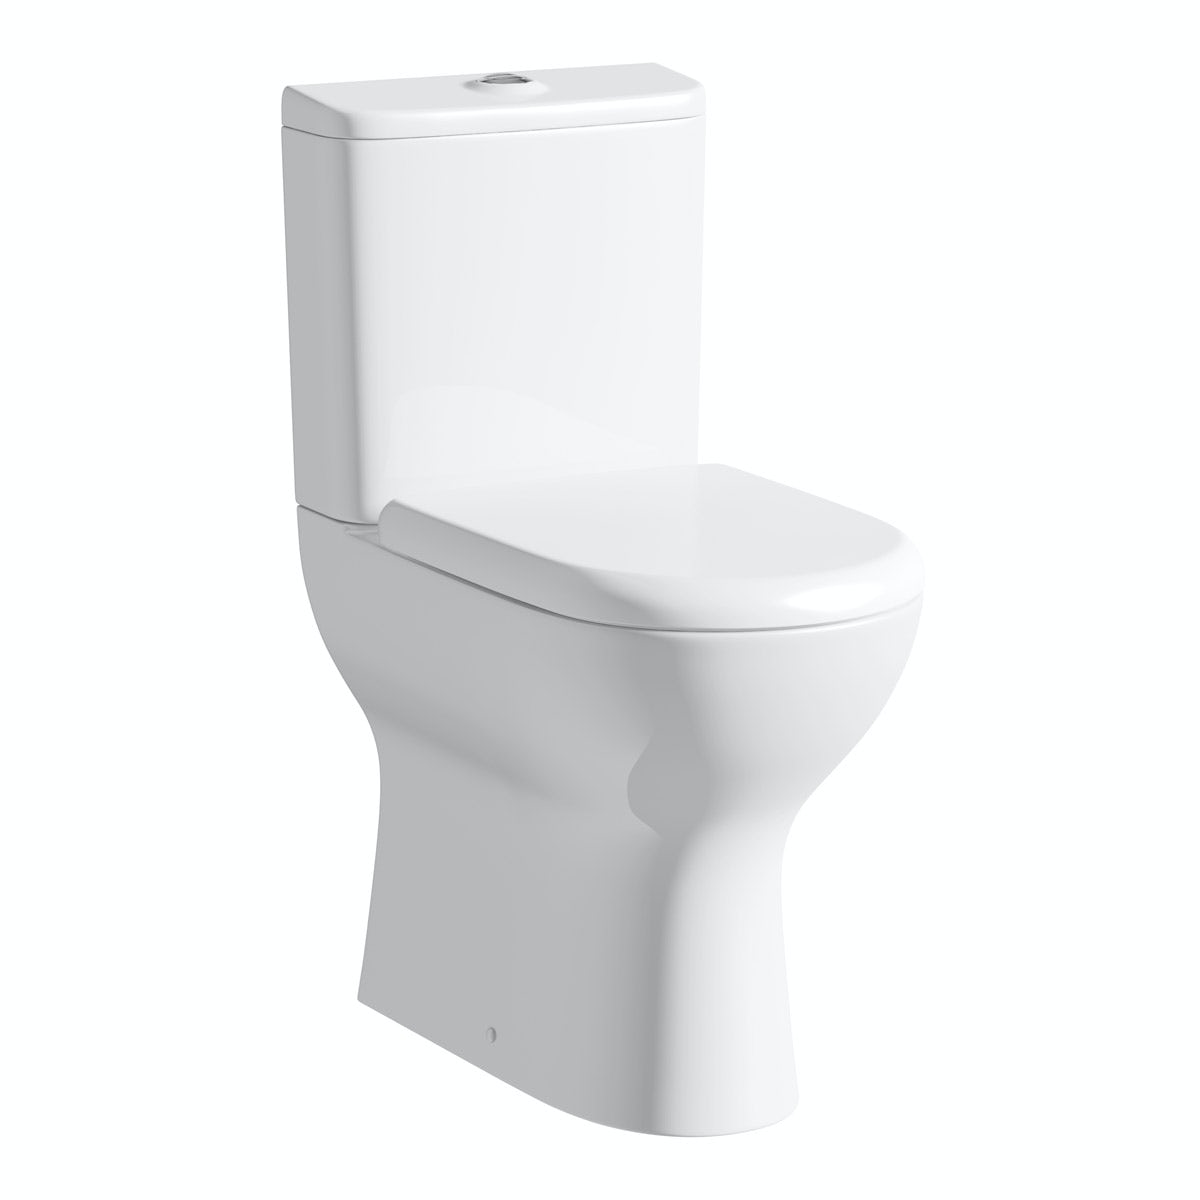 Heath Raised Height Close Coupled Toilet inc. Luxury Soft Close Seat